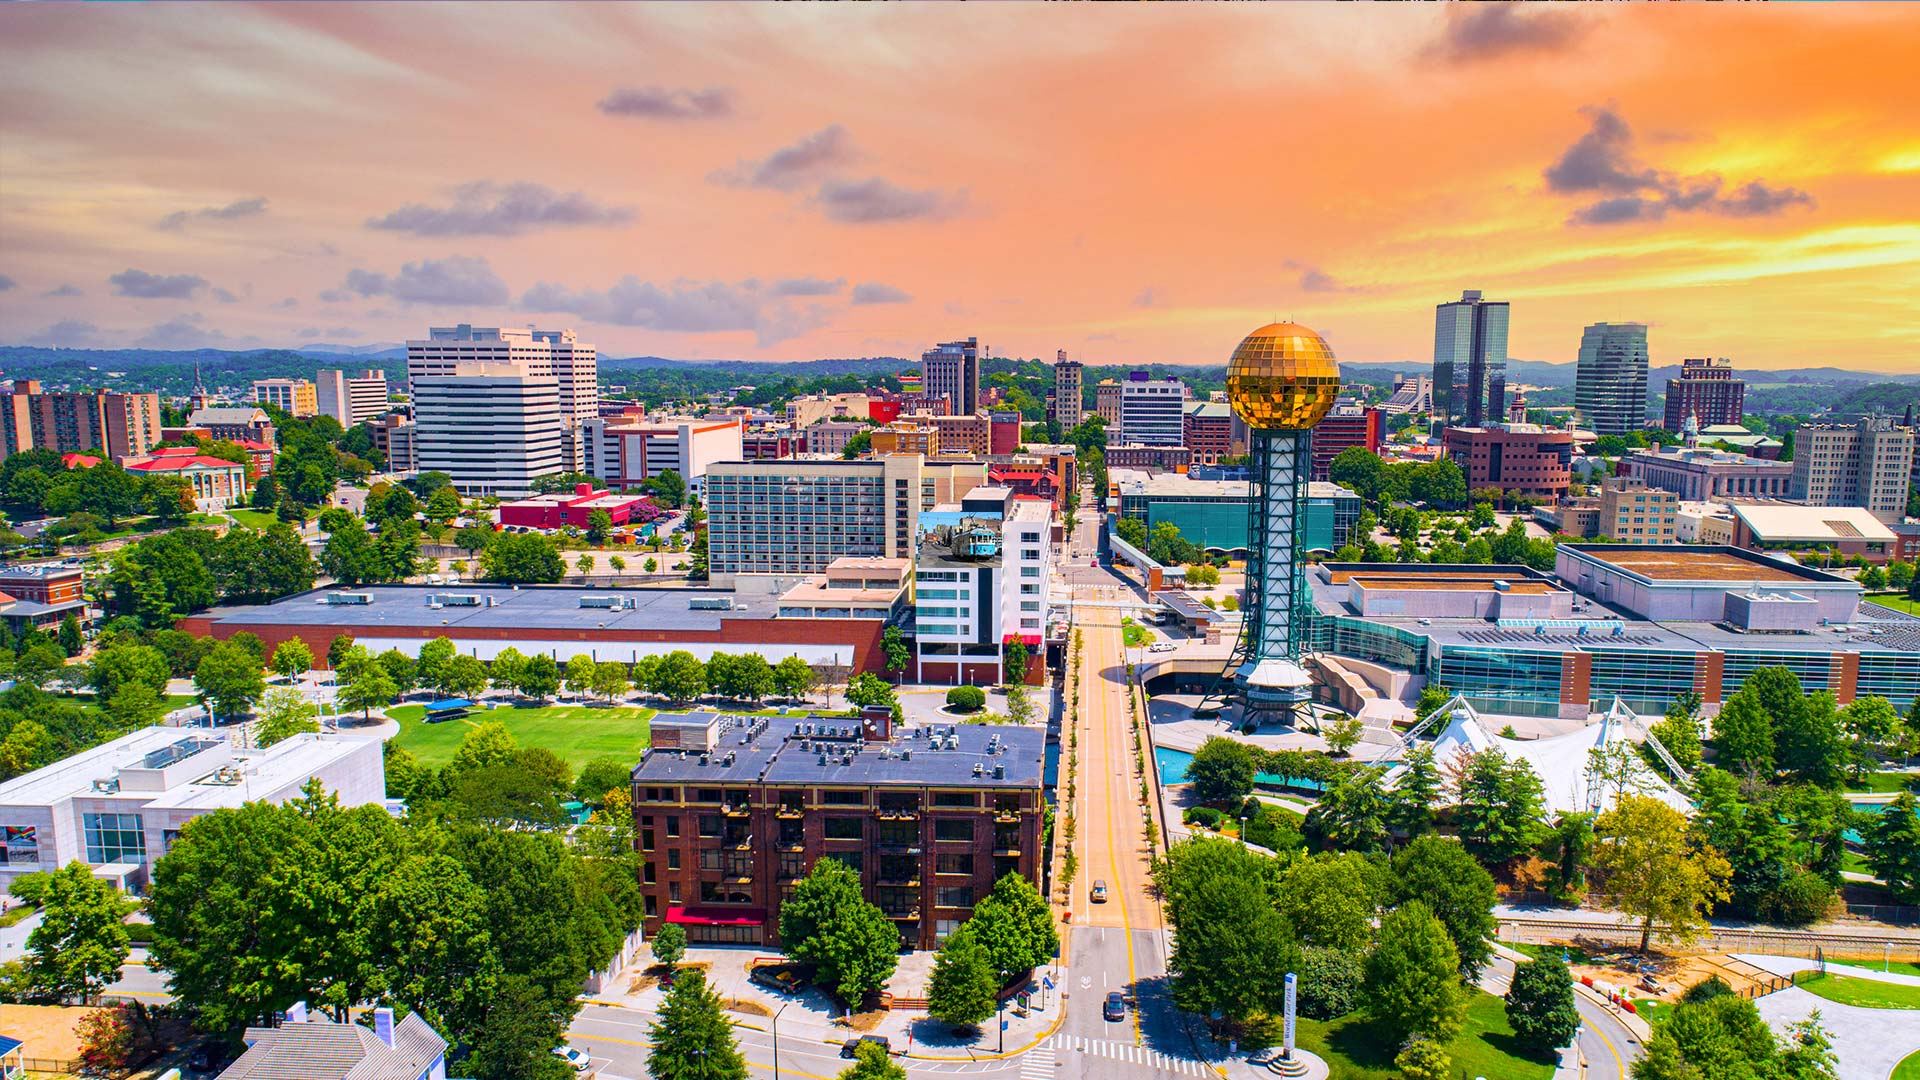 Panorama to illustrate dating in knoxville